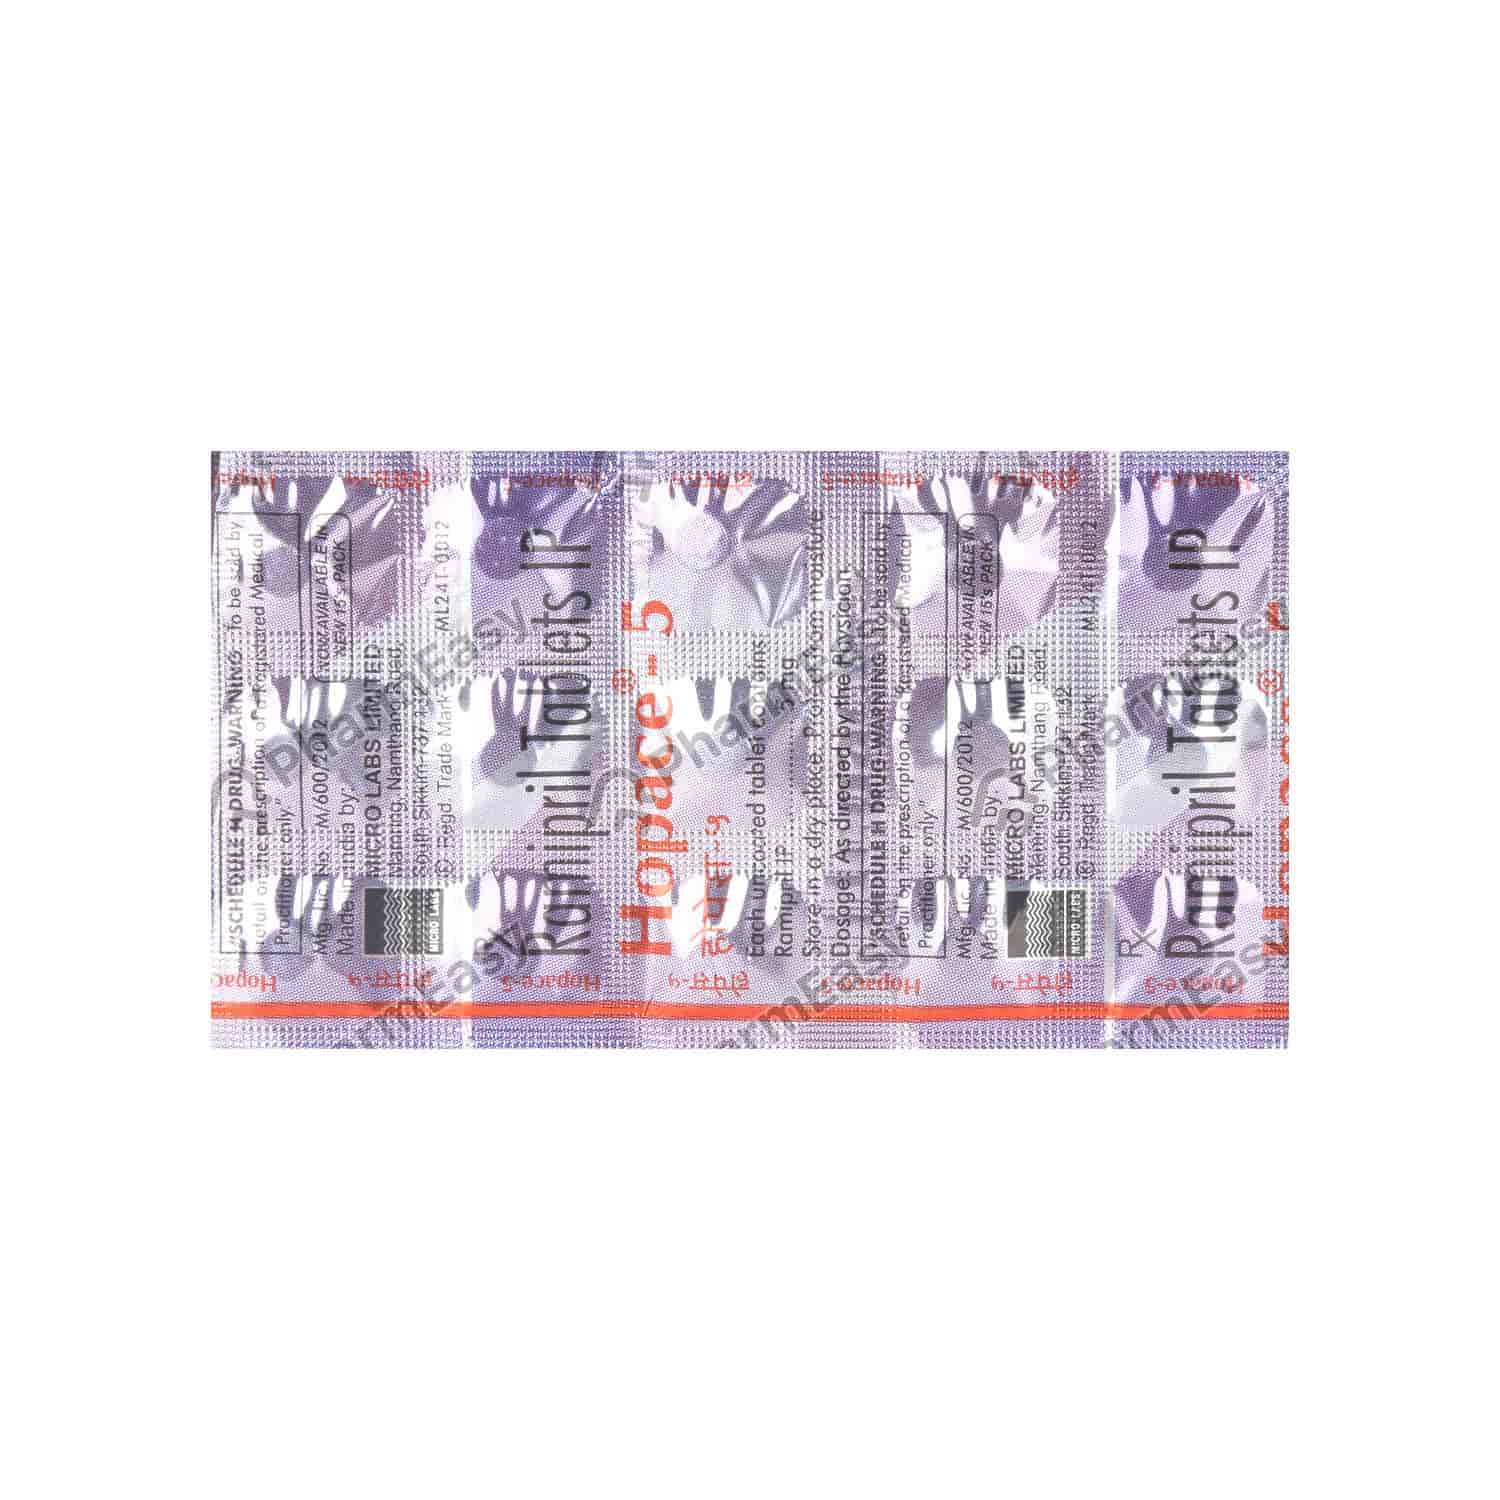 Hopace 5mg Strip Of 15 Tablets